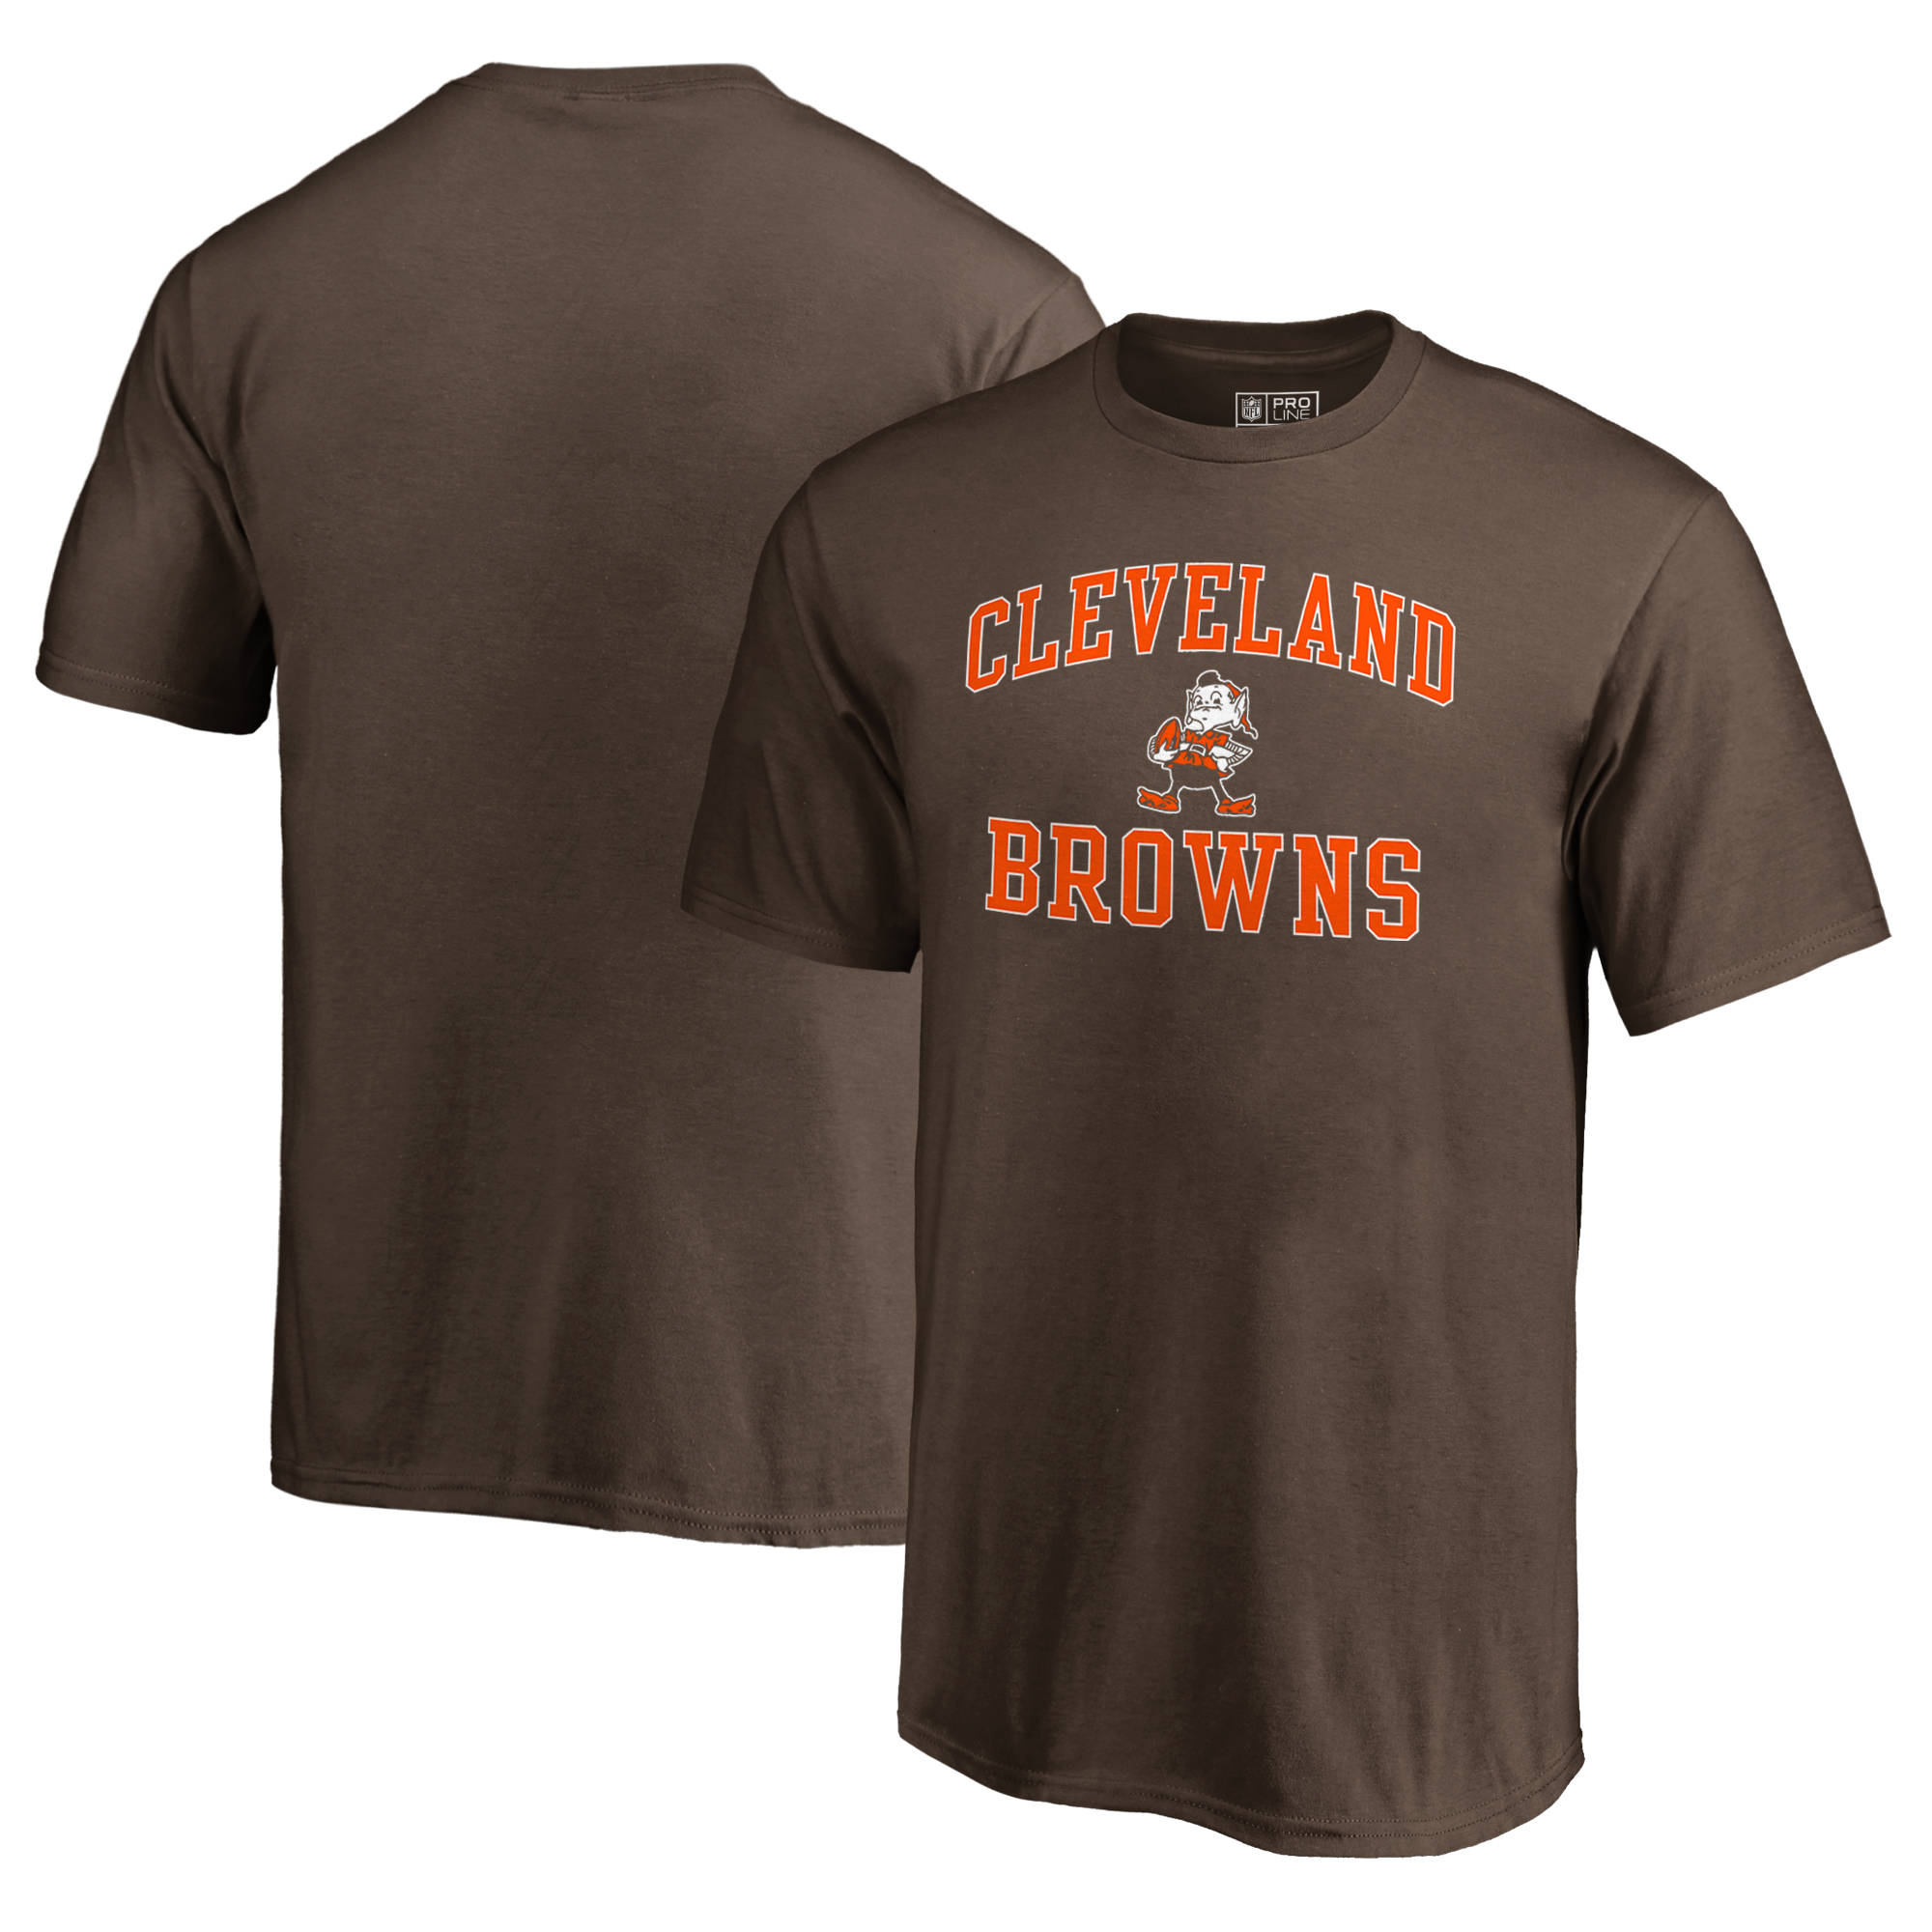 Cleveland Browns NFL Pro Line by Fanatics Branded Youth Vintage Collection Victory Arch T-Shirt - Brown